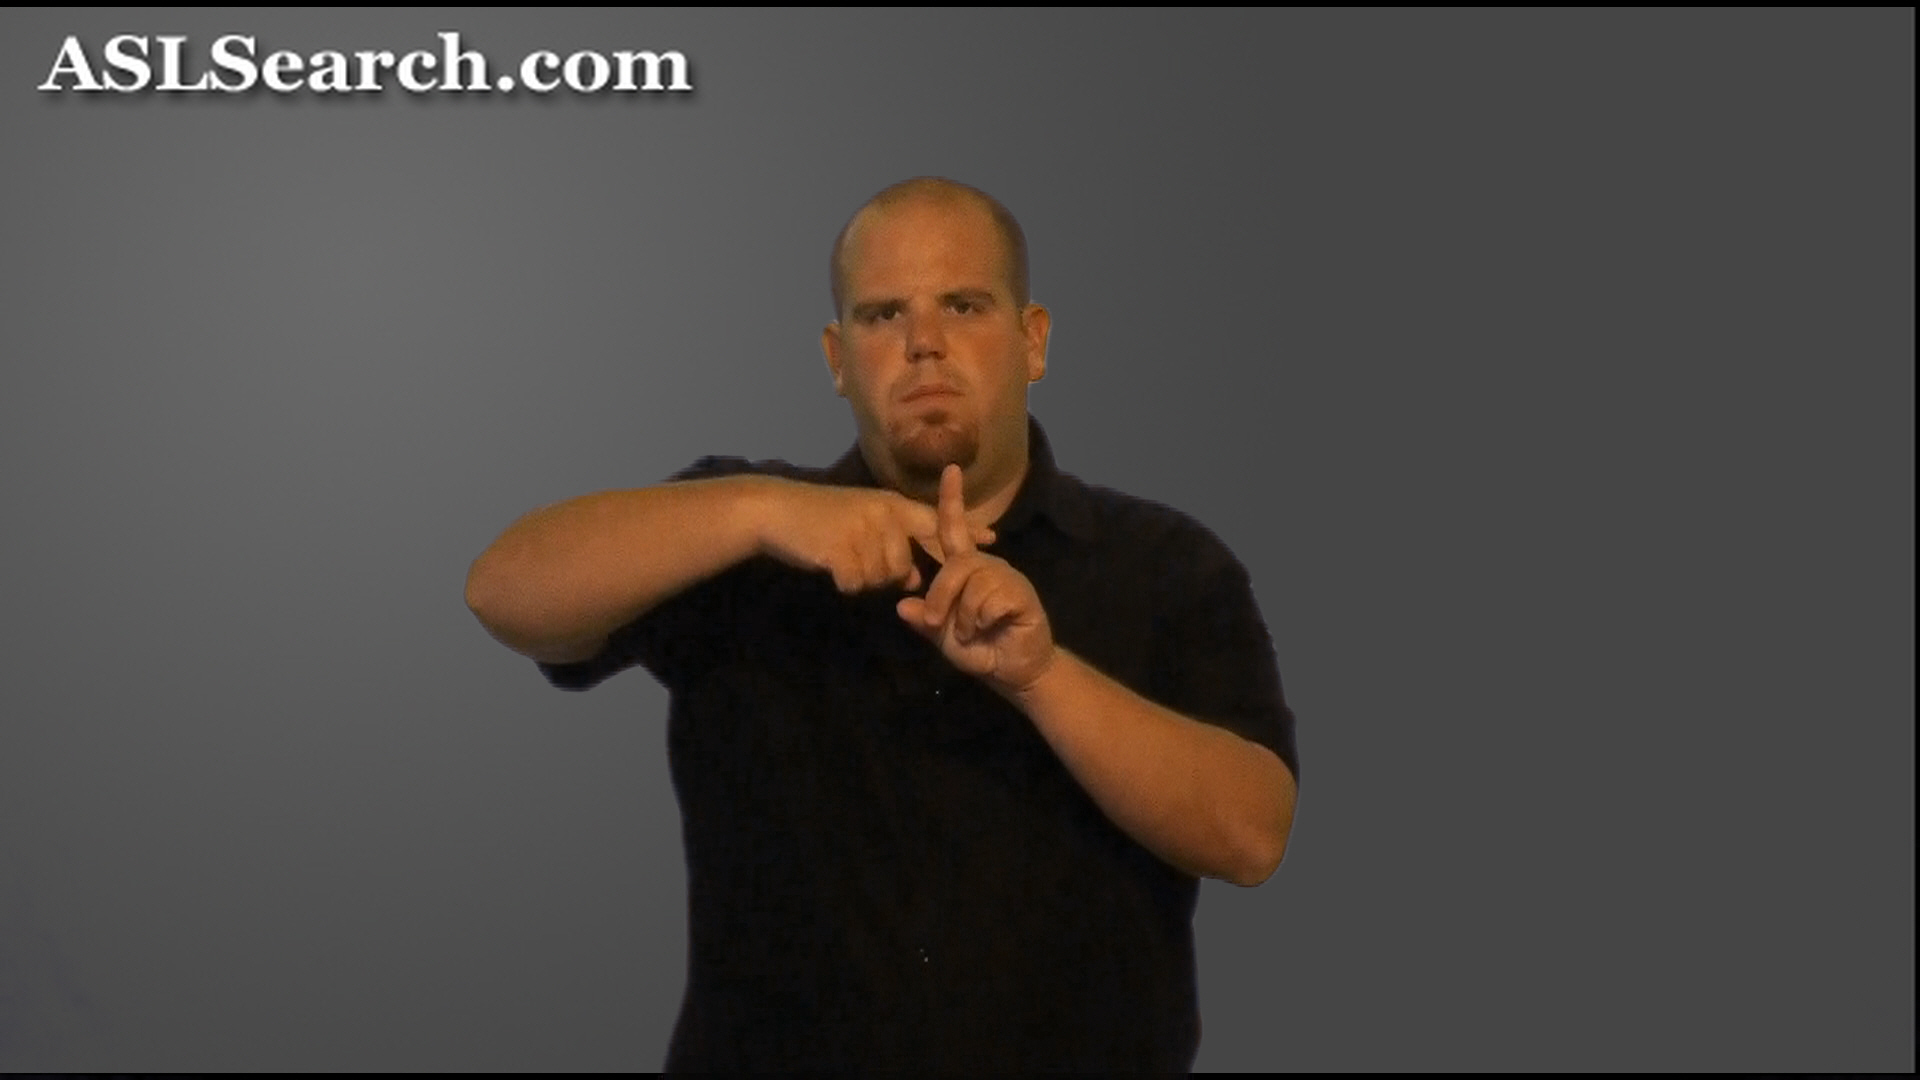 ASL for thermometer